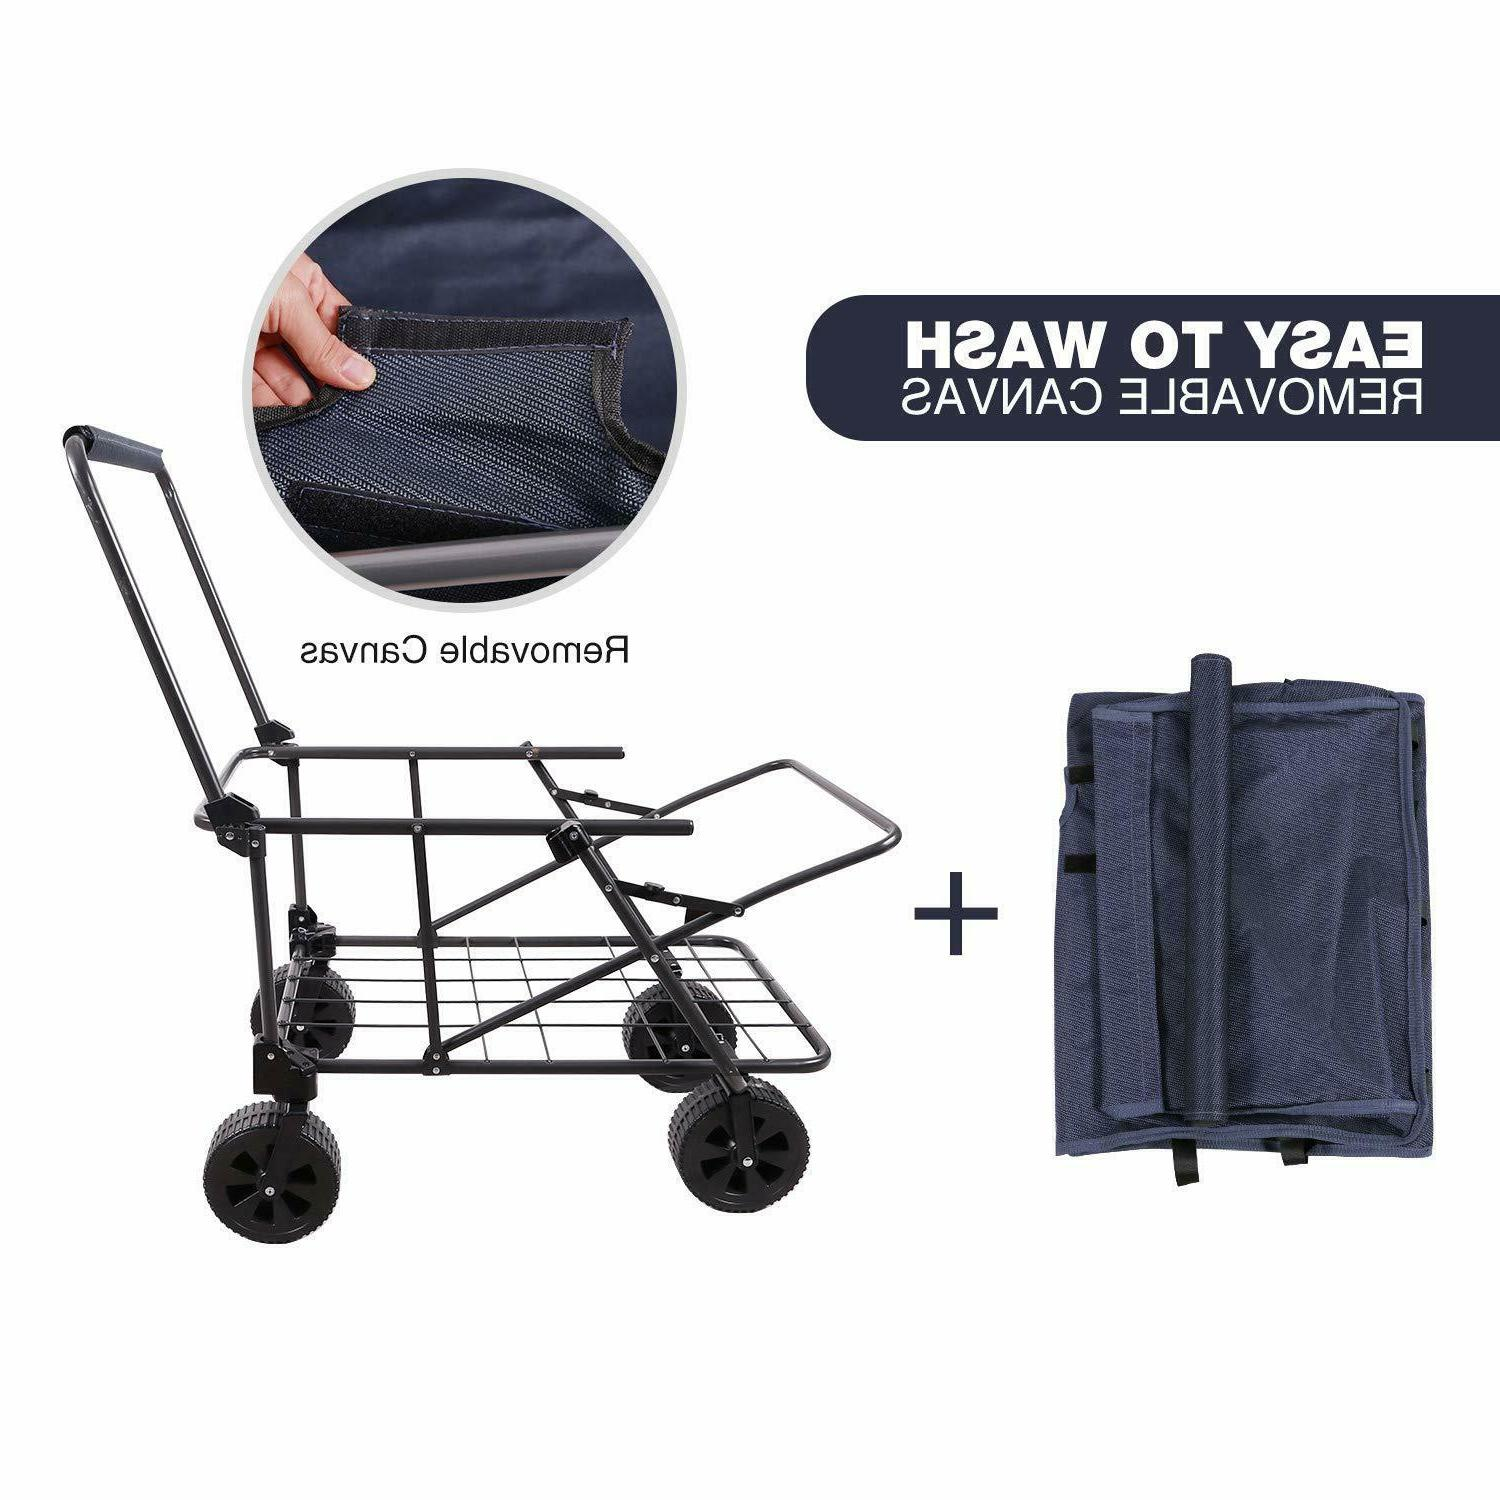 REDCAMP Collapsible Wagon Folding Utility Wagon Camping Beach